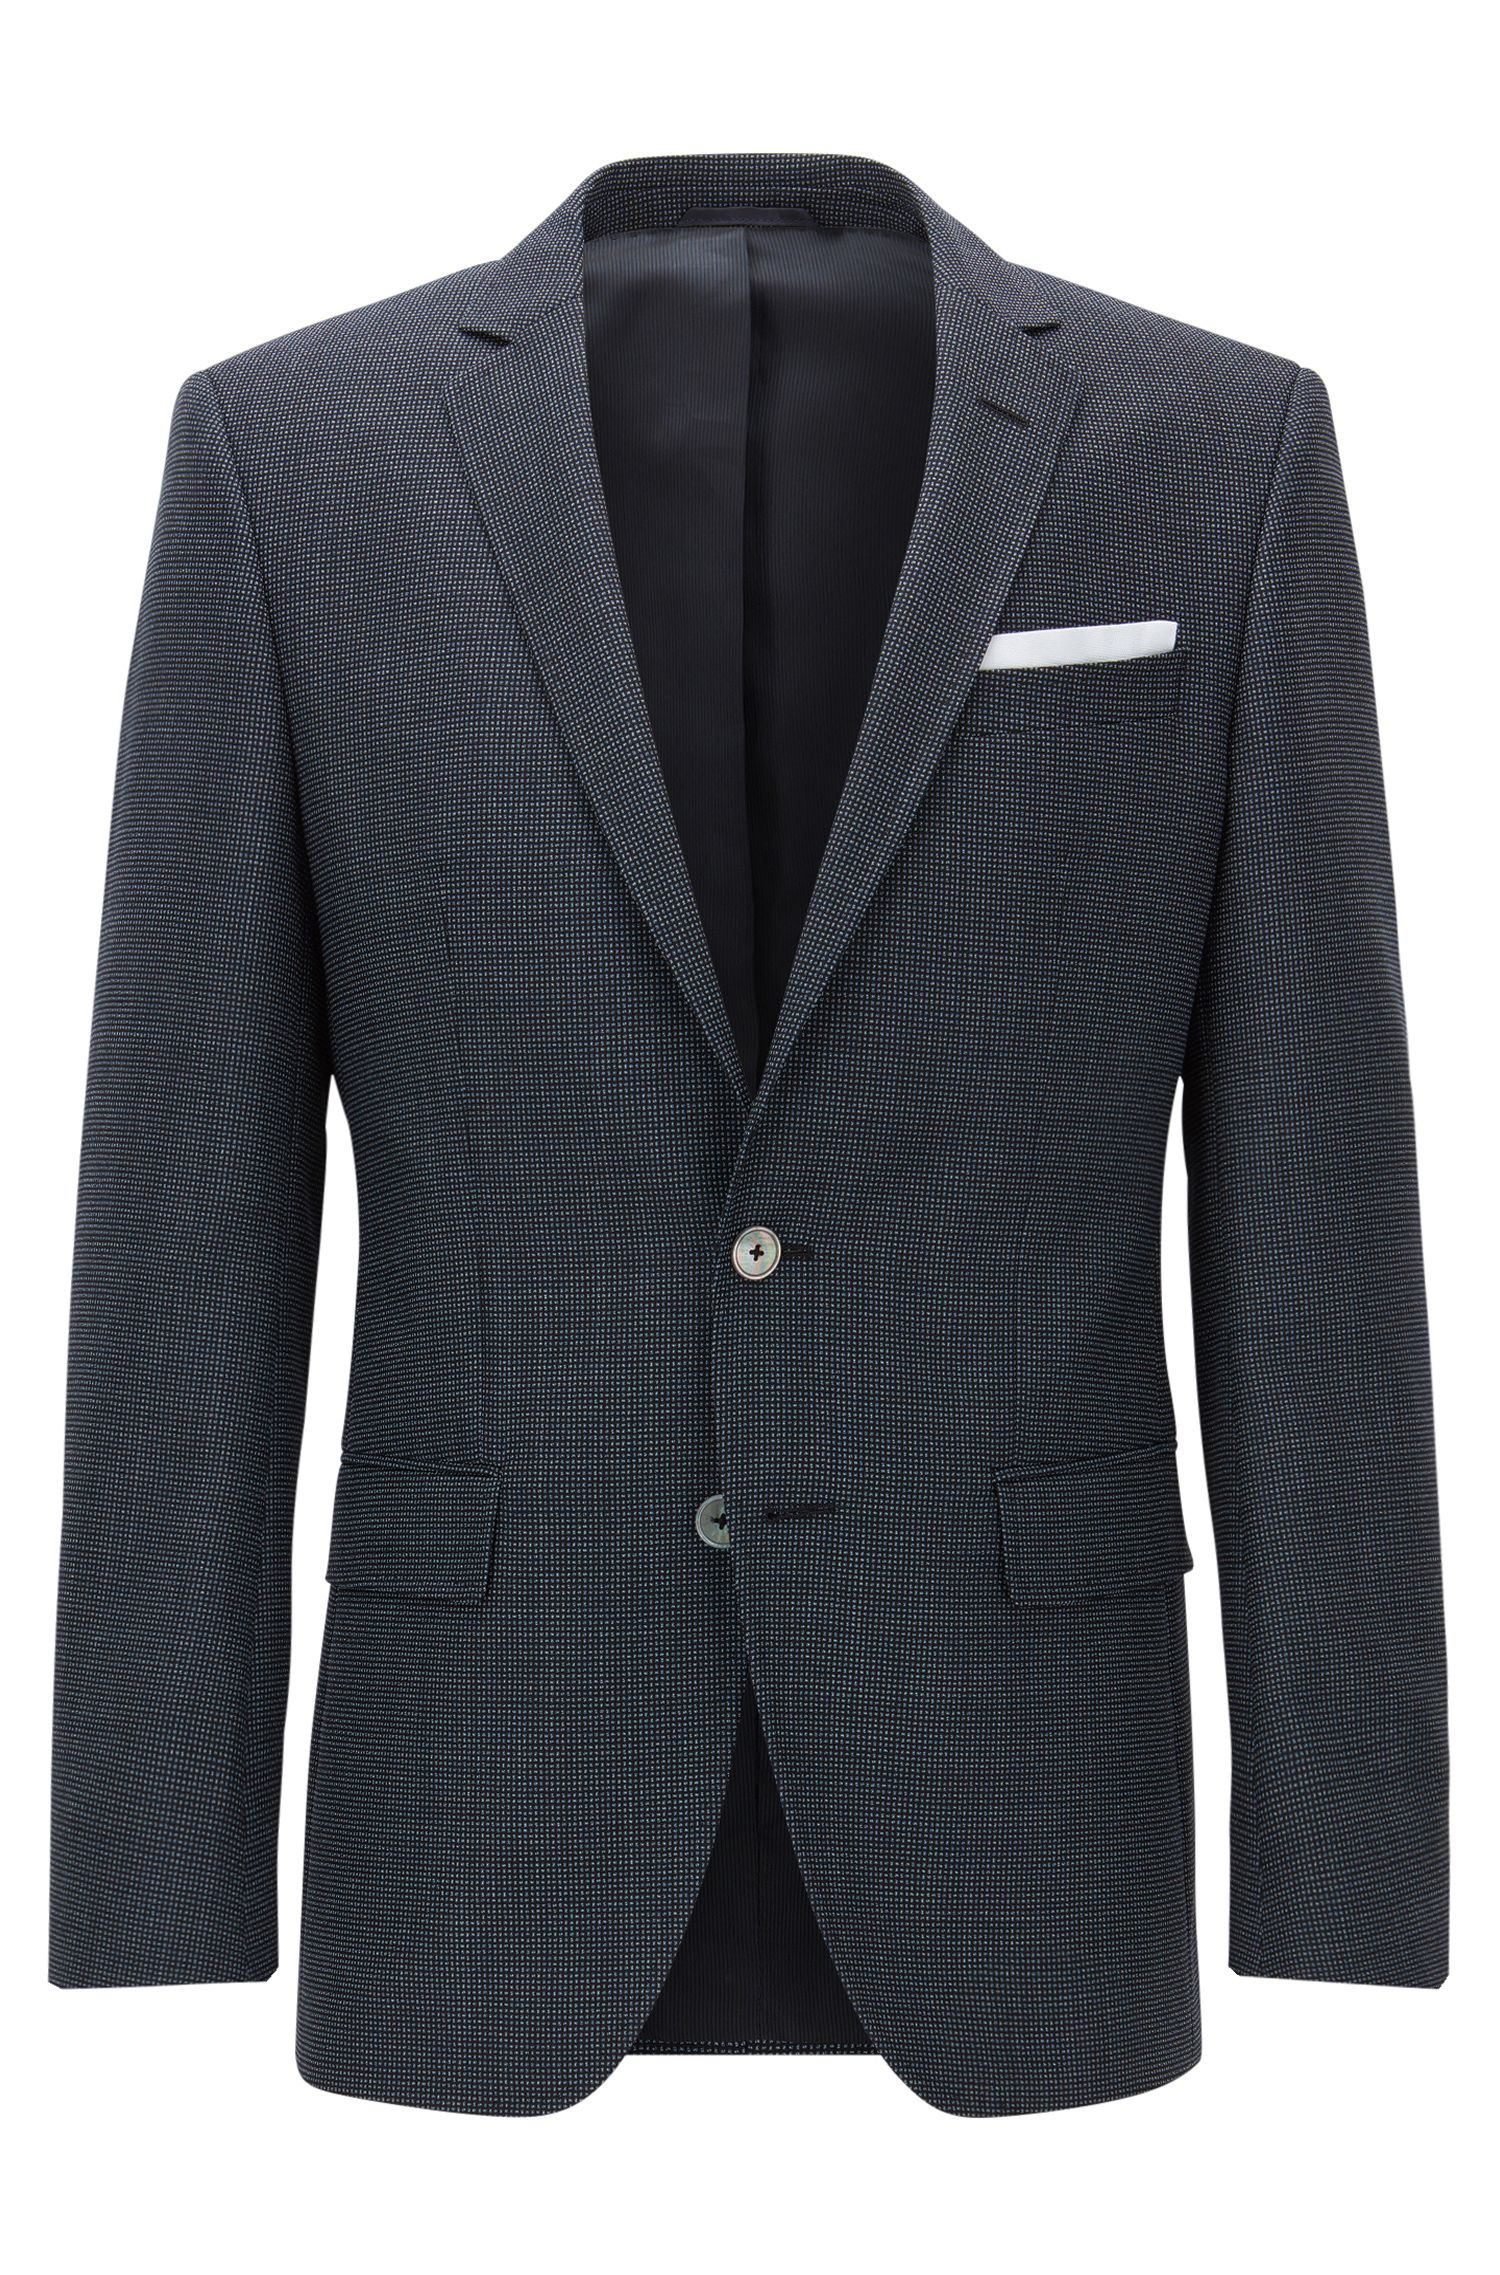 'Hutsons' | Slim Fit, Nailhead Virgin Wool Sport Coat